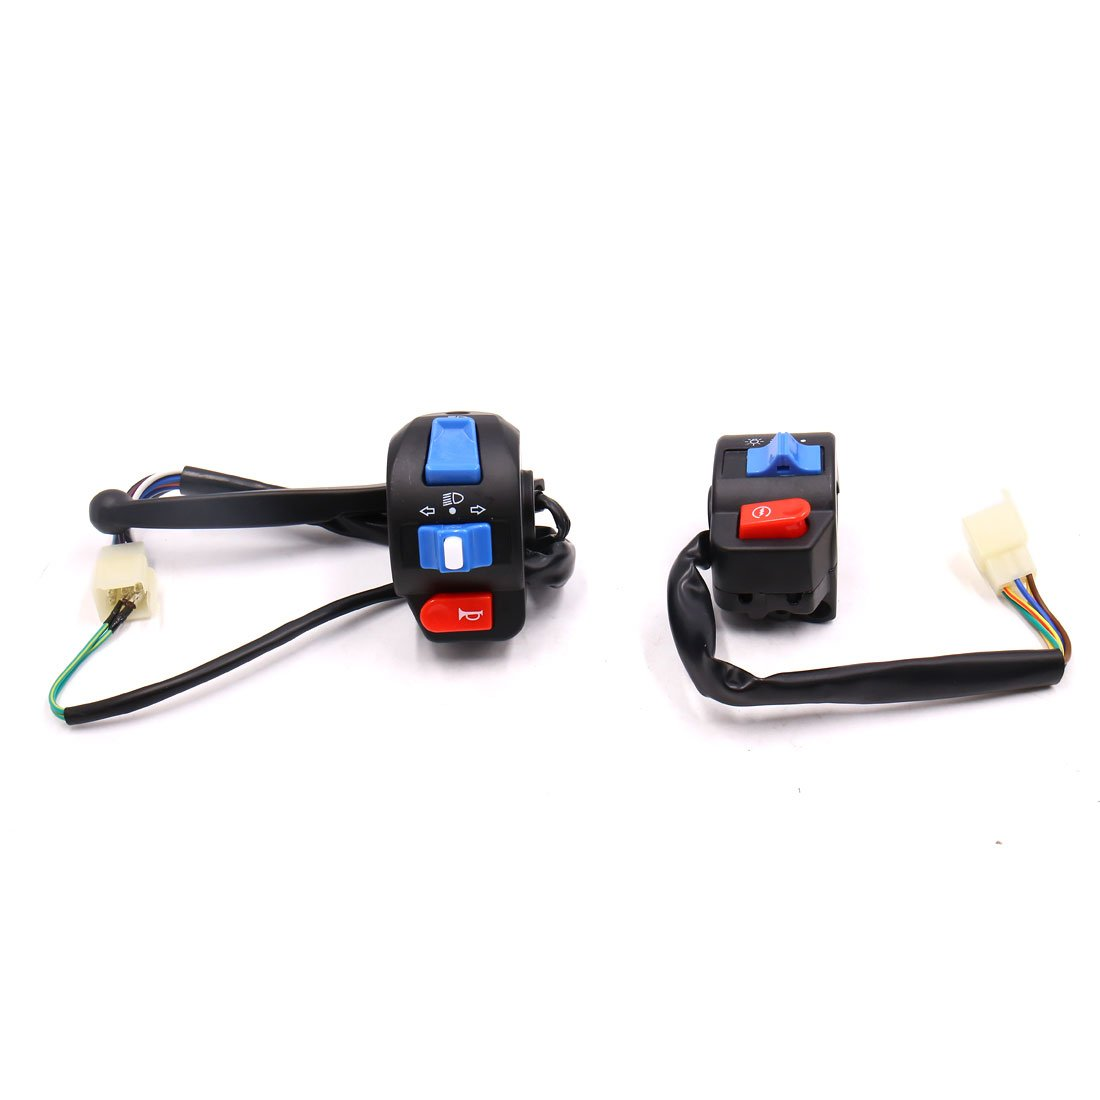 uxcell 2pcs Handlebar Turn Signal Light ON/OFF Control Switch for GY6-125 by uxcell